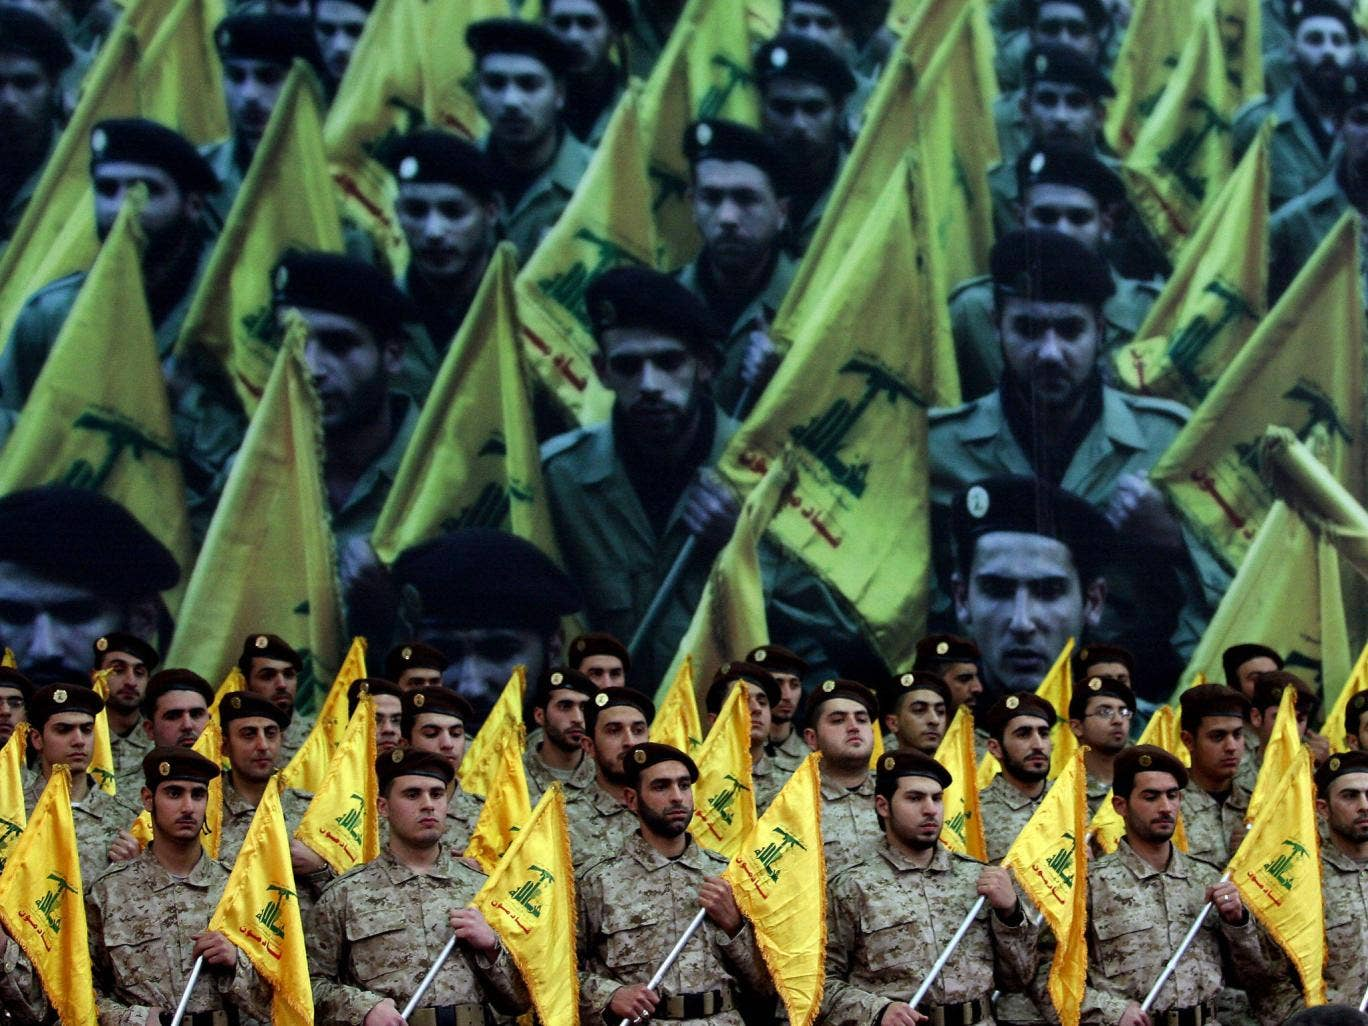 Shiite Muslims Hezbollah militants stand to attention